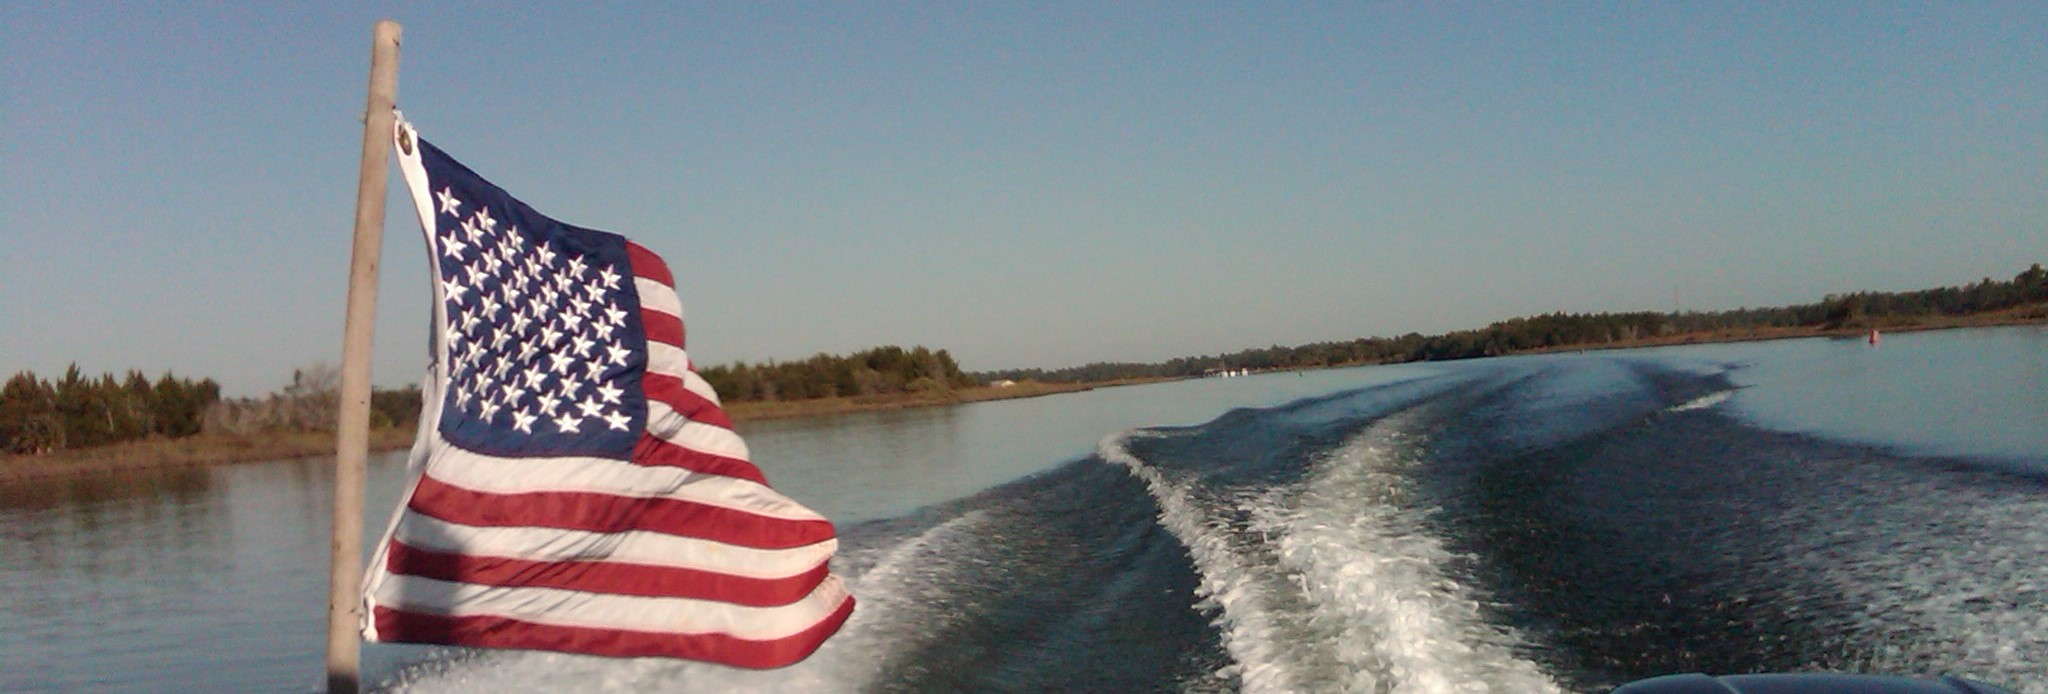 Banner image, US flag and river